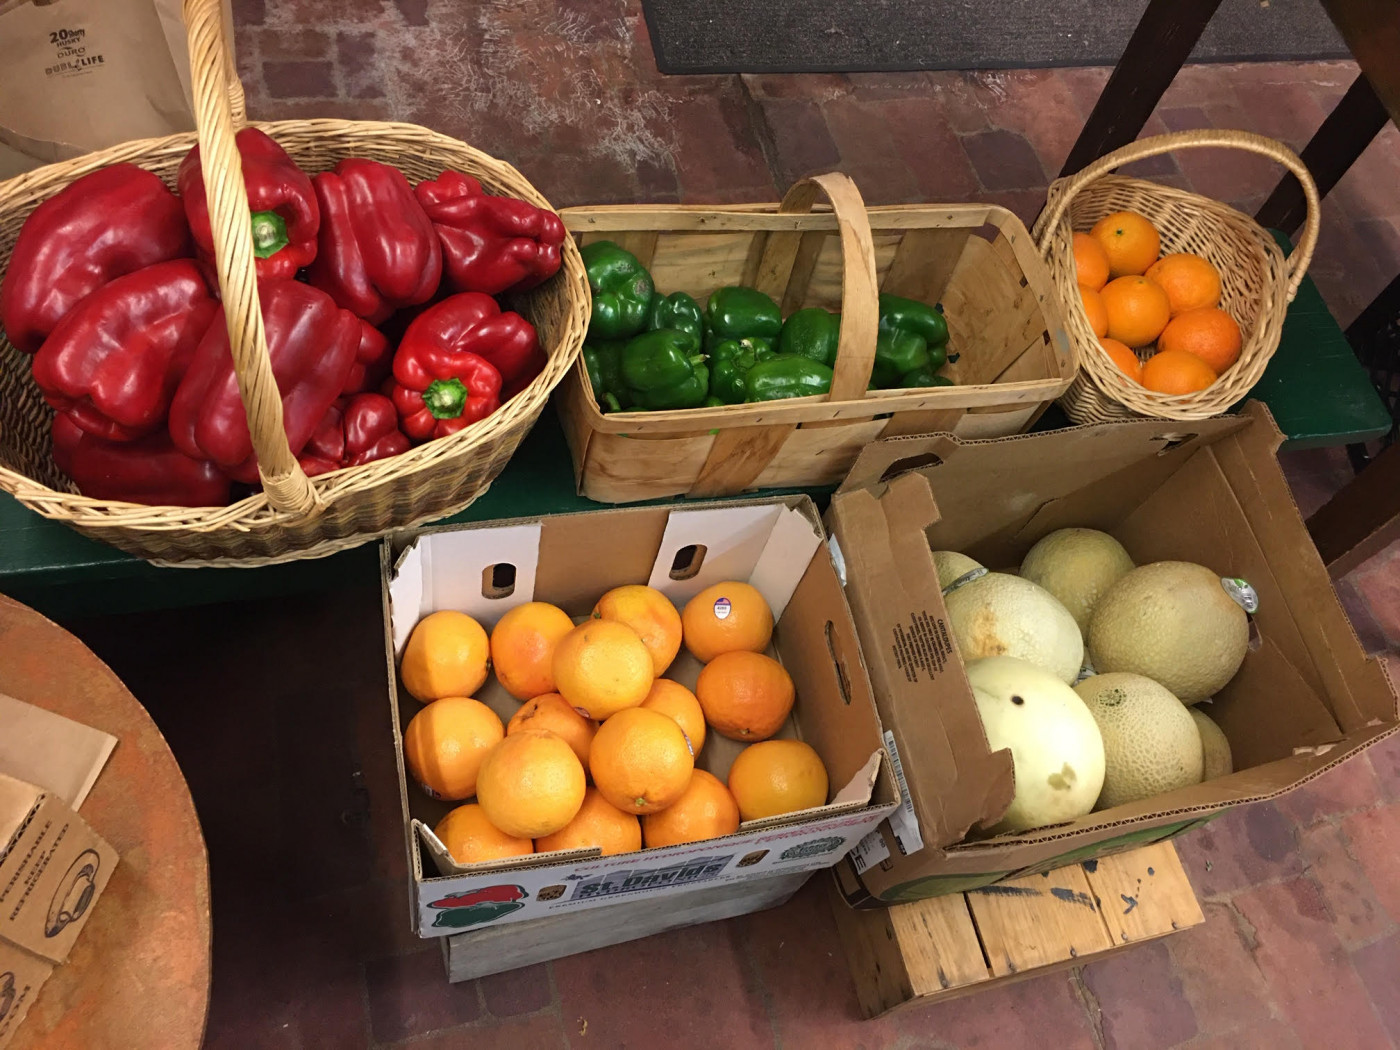 ADK Trading Post Produce